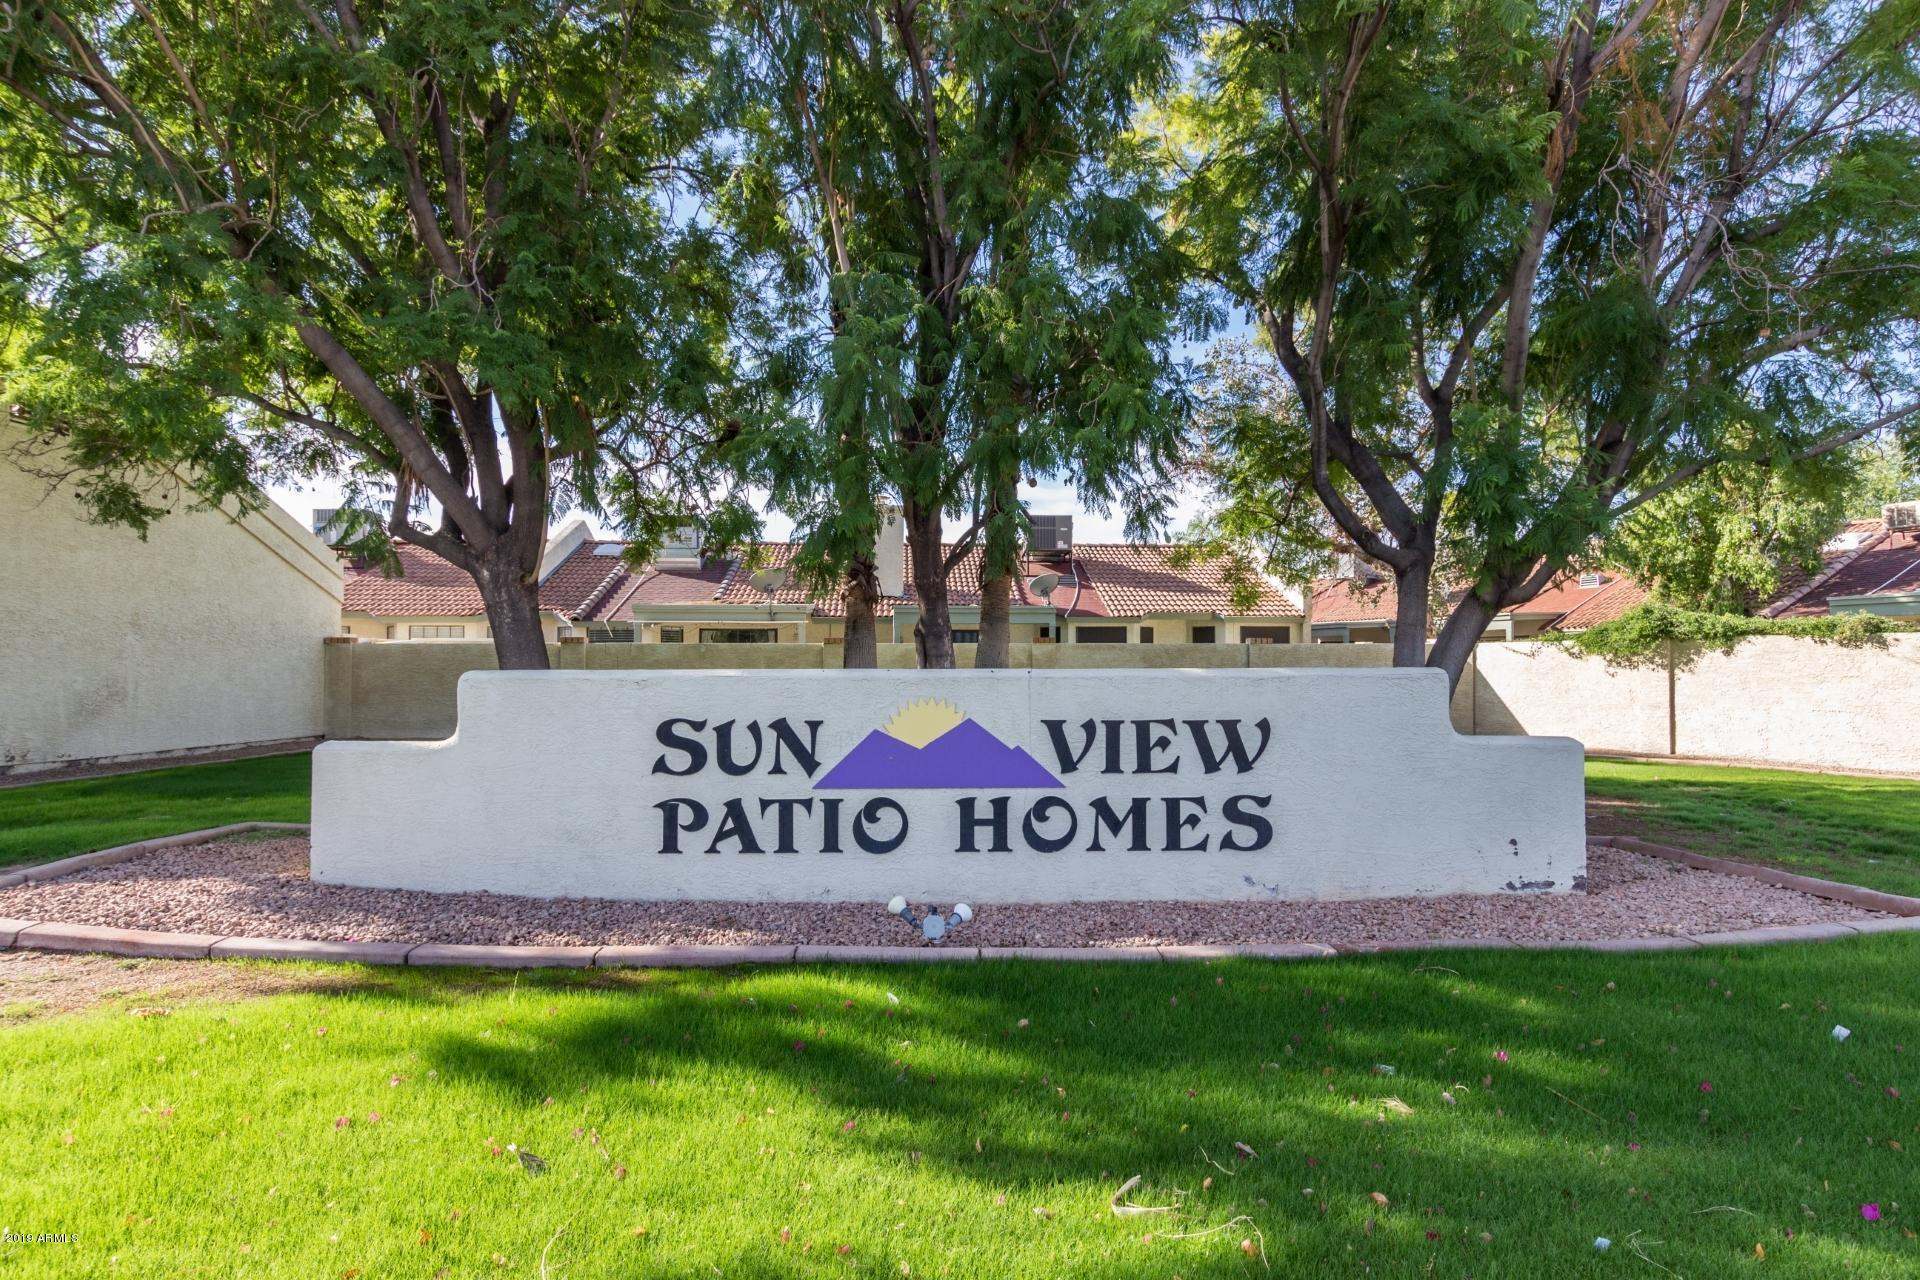 Photo of 1500 N Sunview Parkway #24, Gilbert, AZ 85234